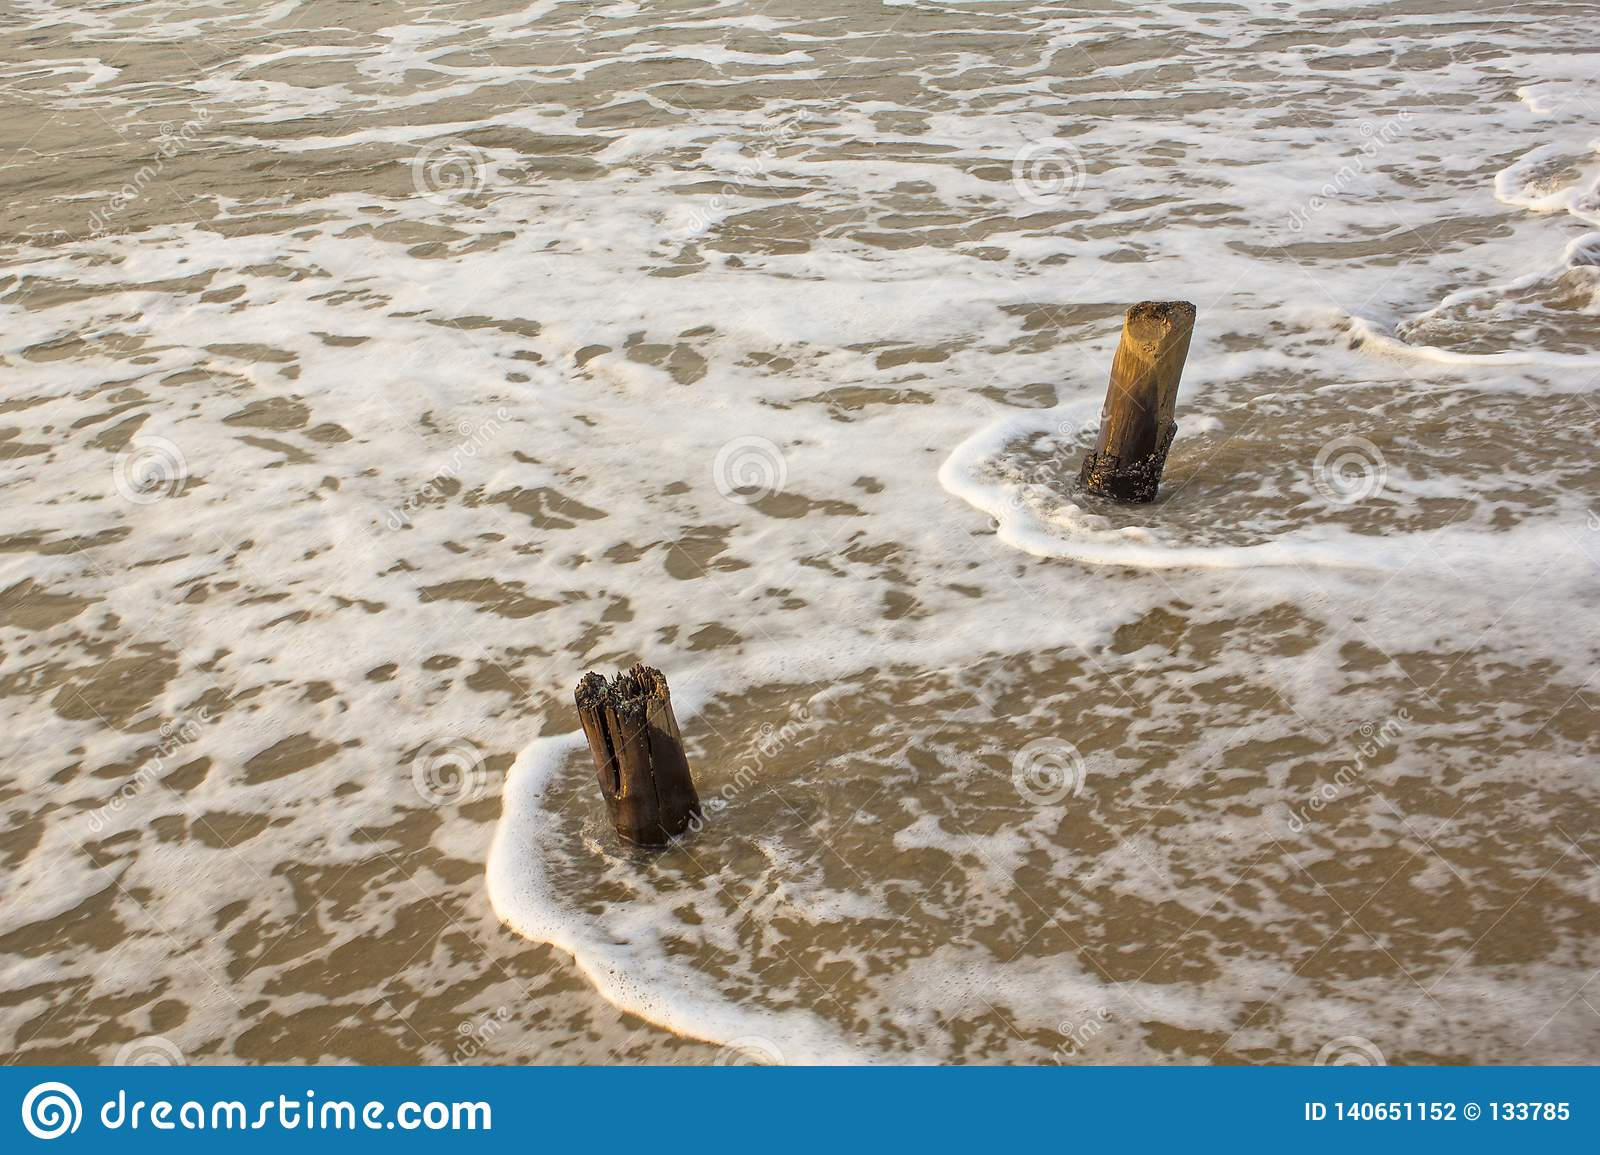 Two old wooden pillars protrude from the foamy water of the sea surf